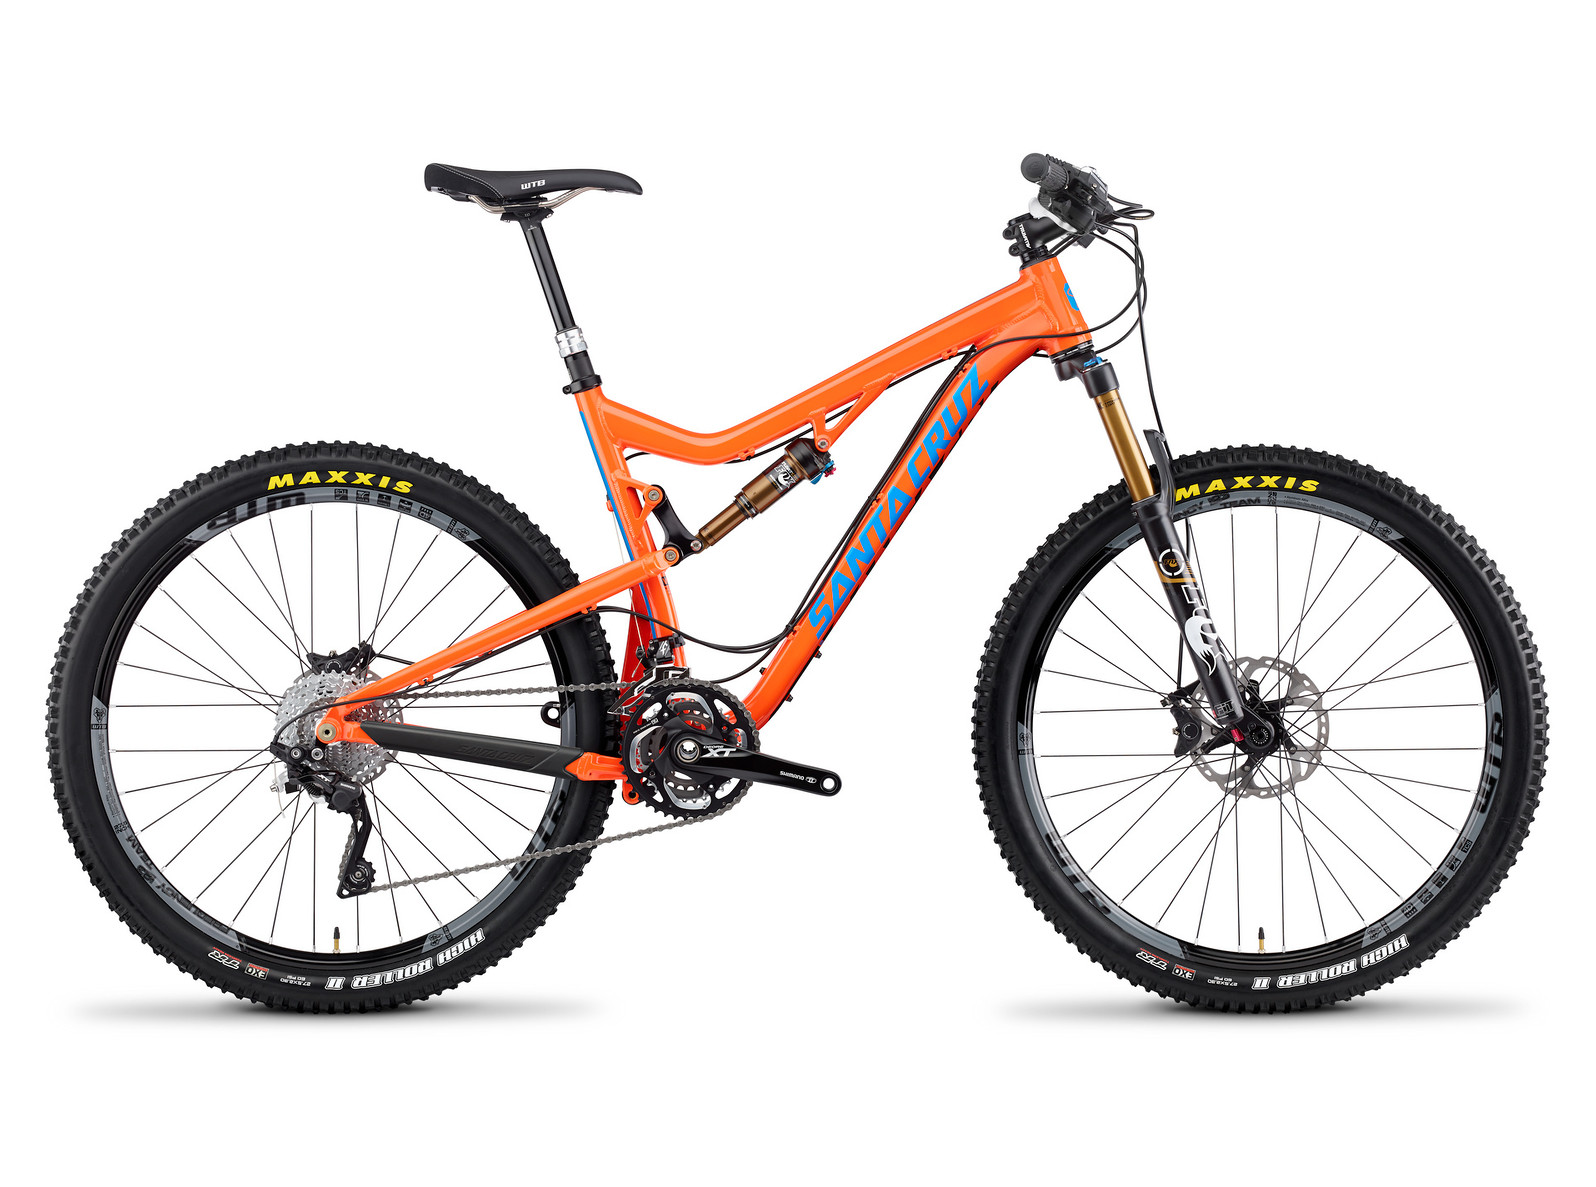 2014 Santa Cruz Solo XTR AM 27.5 Bike Solo_profile_Aluminum_ORG